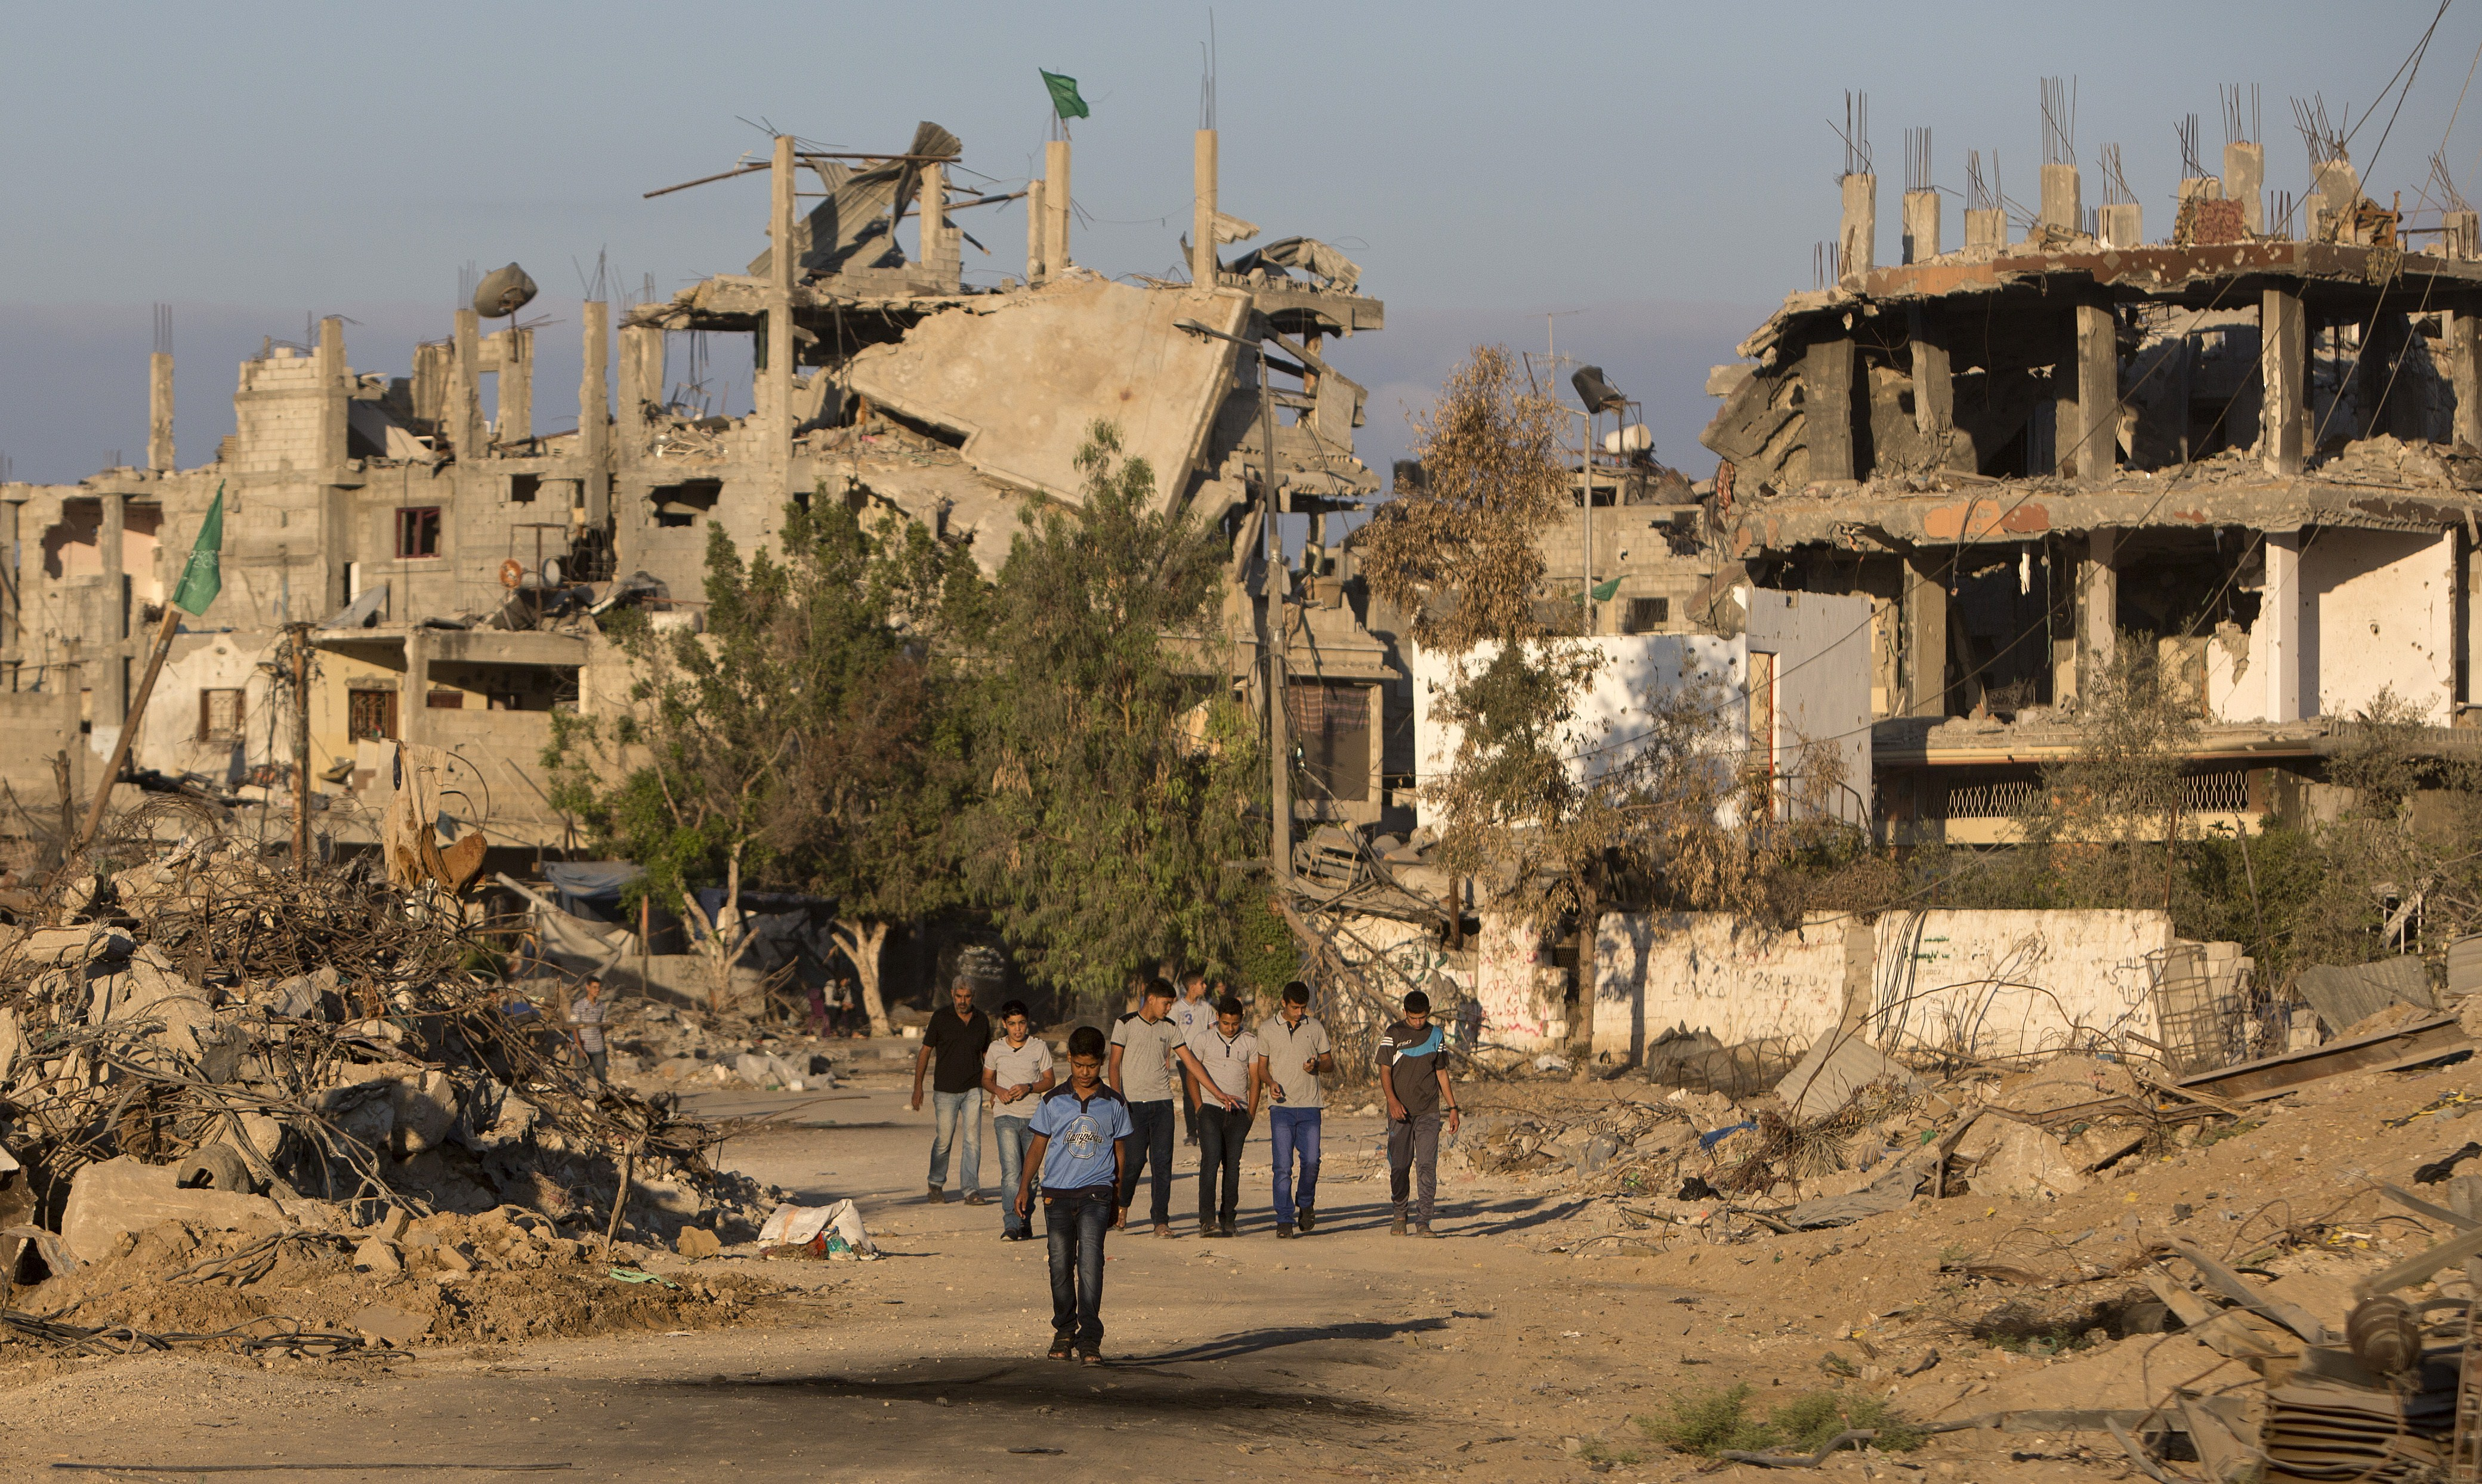 Palestinian boys walk past buildings which were destroyed by Israeli strikes on their way to school in the Shejaiya neighbourhood of Gaza City on September 14, 2014 on the first day of the new school year. (MAHMUD HAMS/AFP/Getty Images)